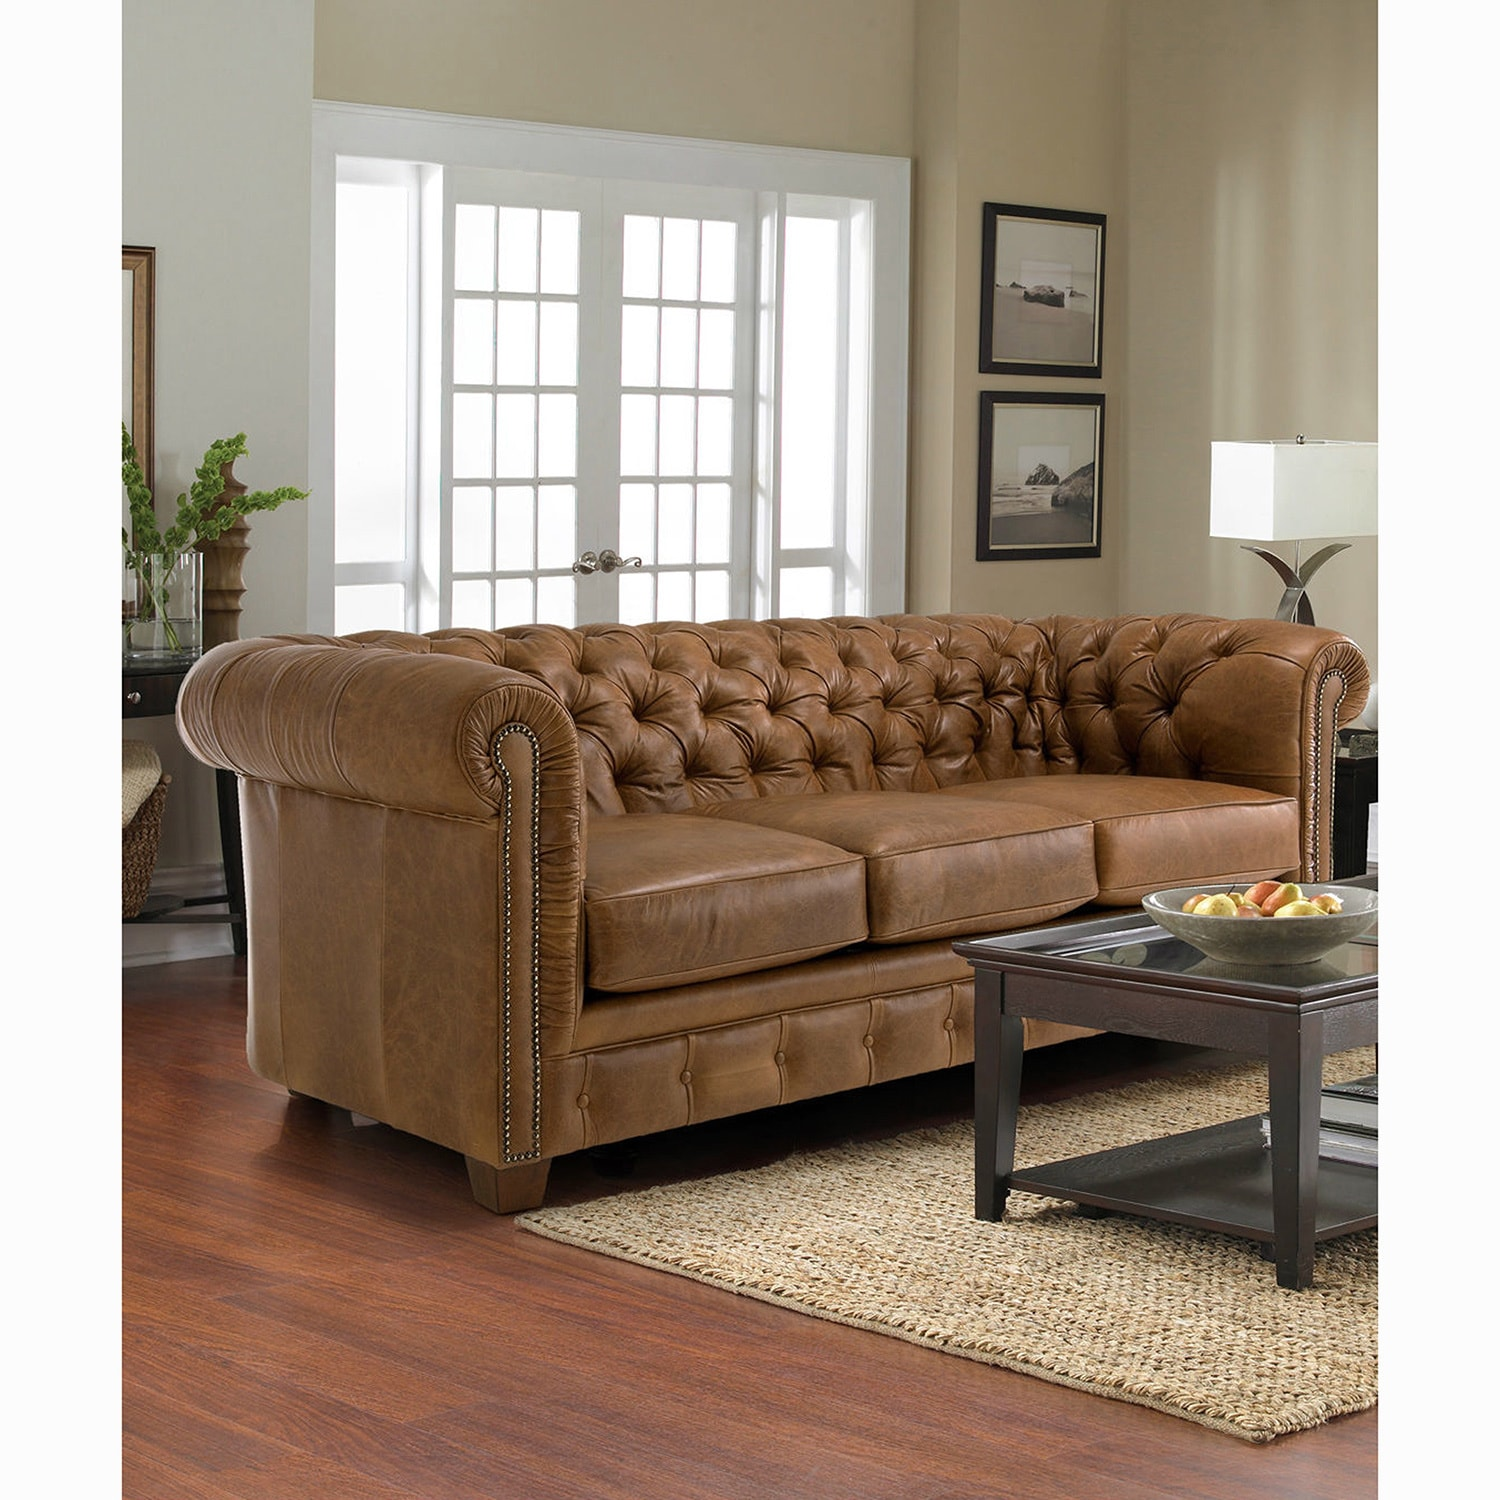 Merveilleux Hancock Tufted Distressed Saddle Brown Italian Chesterfield Leather Sofa    Free Shipping Today   Overstock.com   15472806